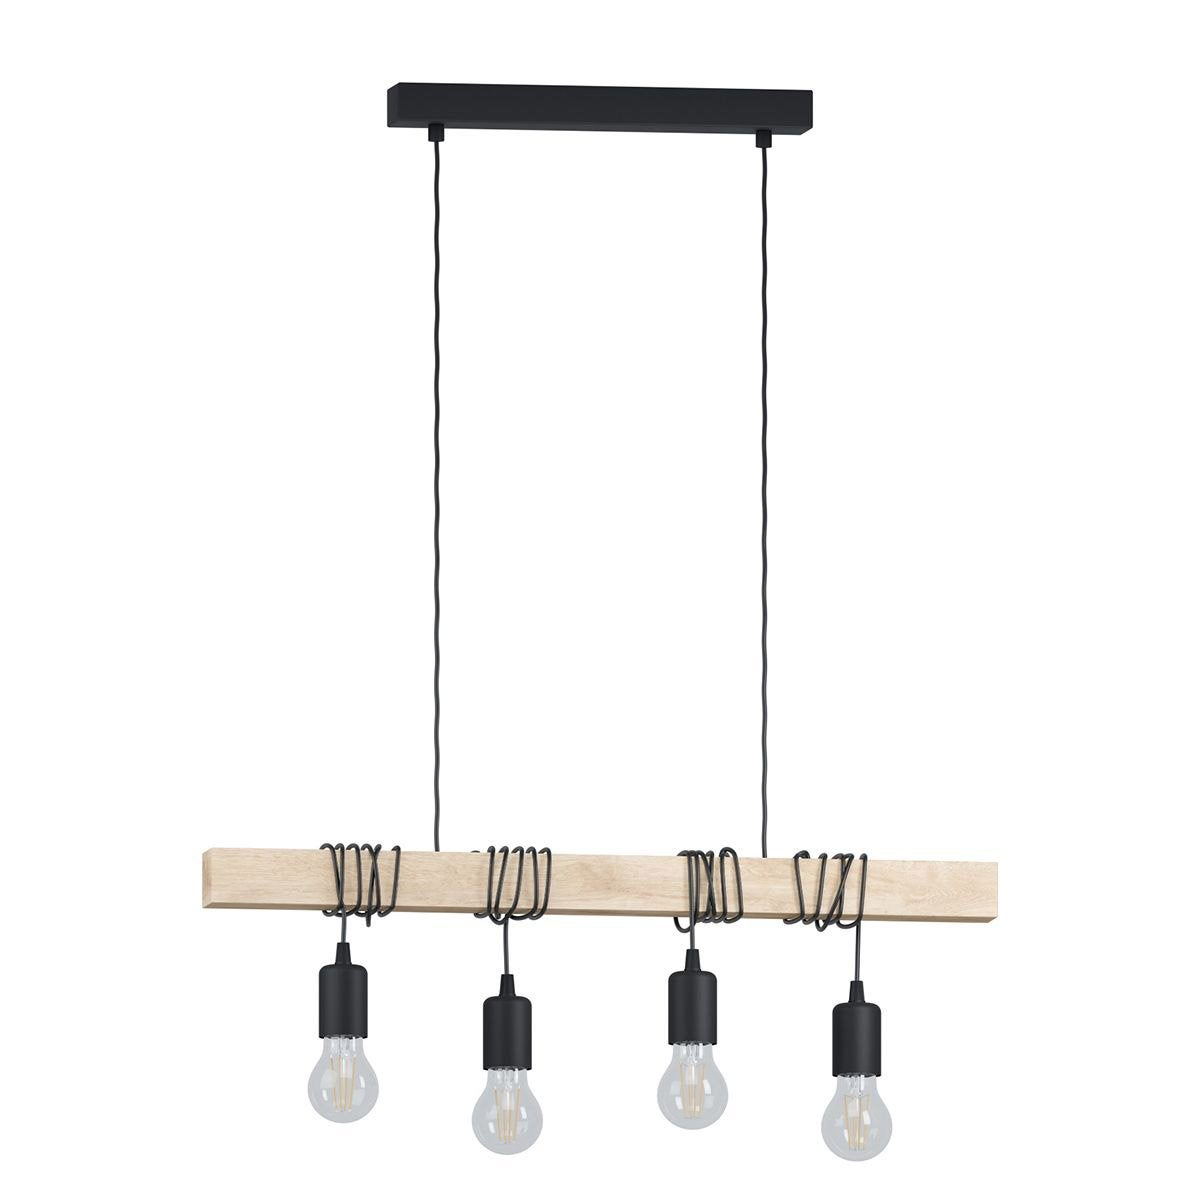 suspension e27 design townshend bois noir 4 x 60 w eglo leroy merlin. Black Bedroom Furniture Sets. Home Design Ideas